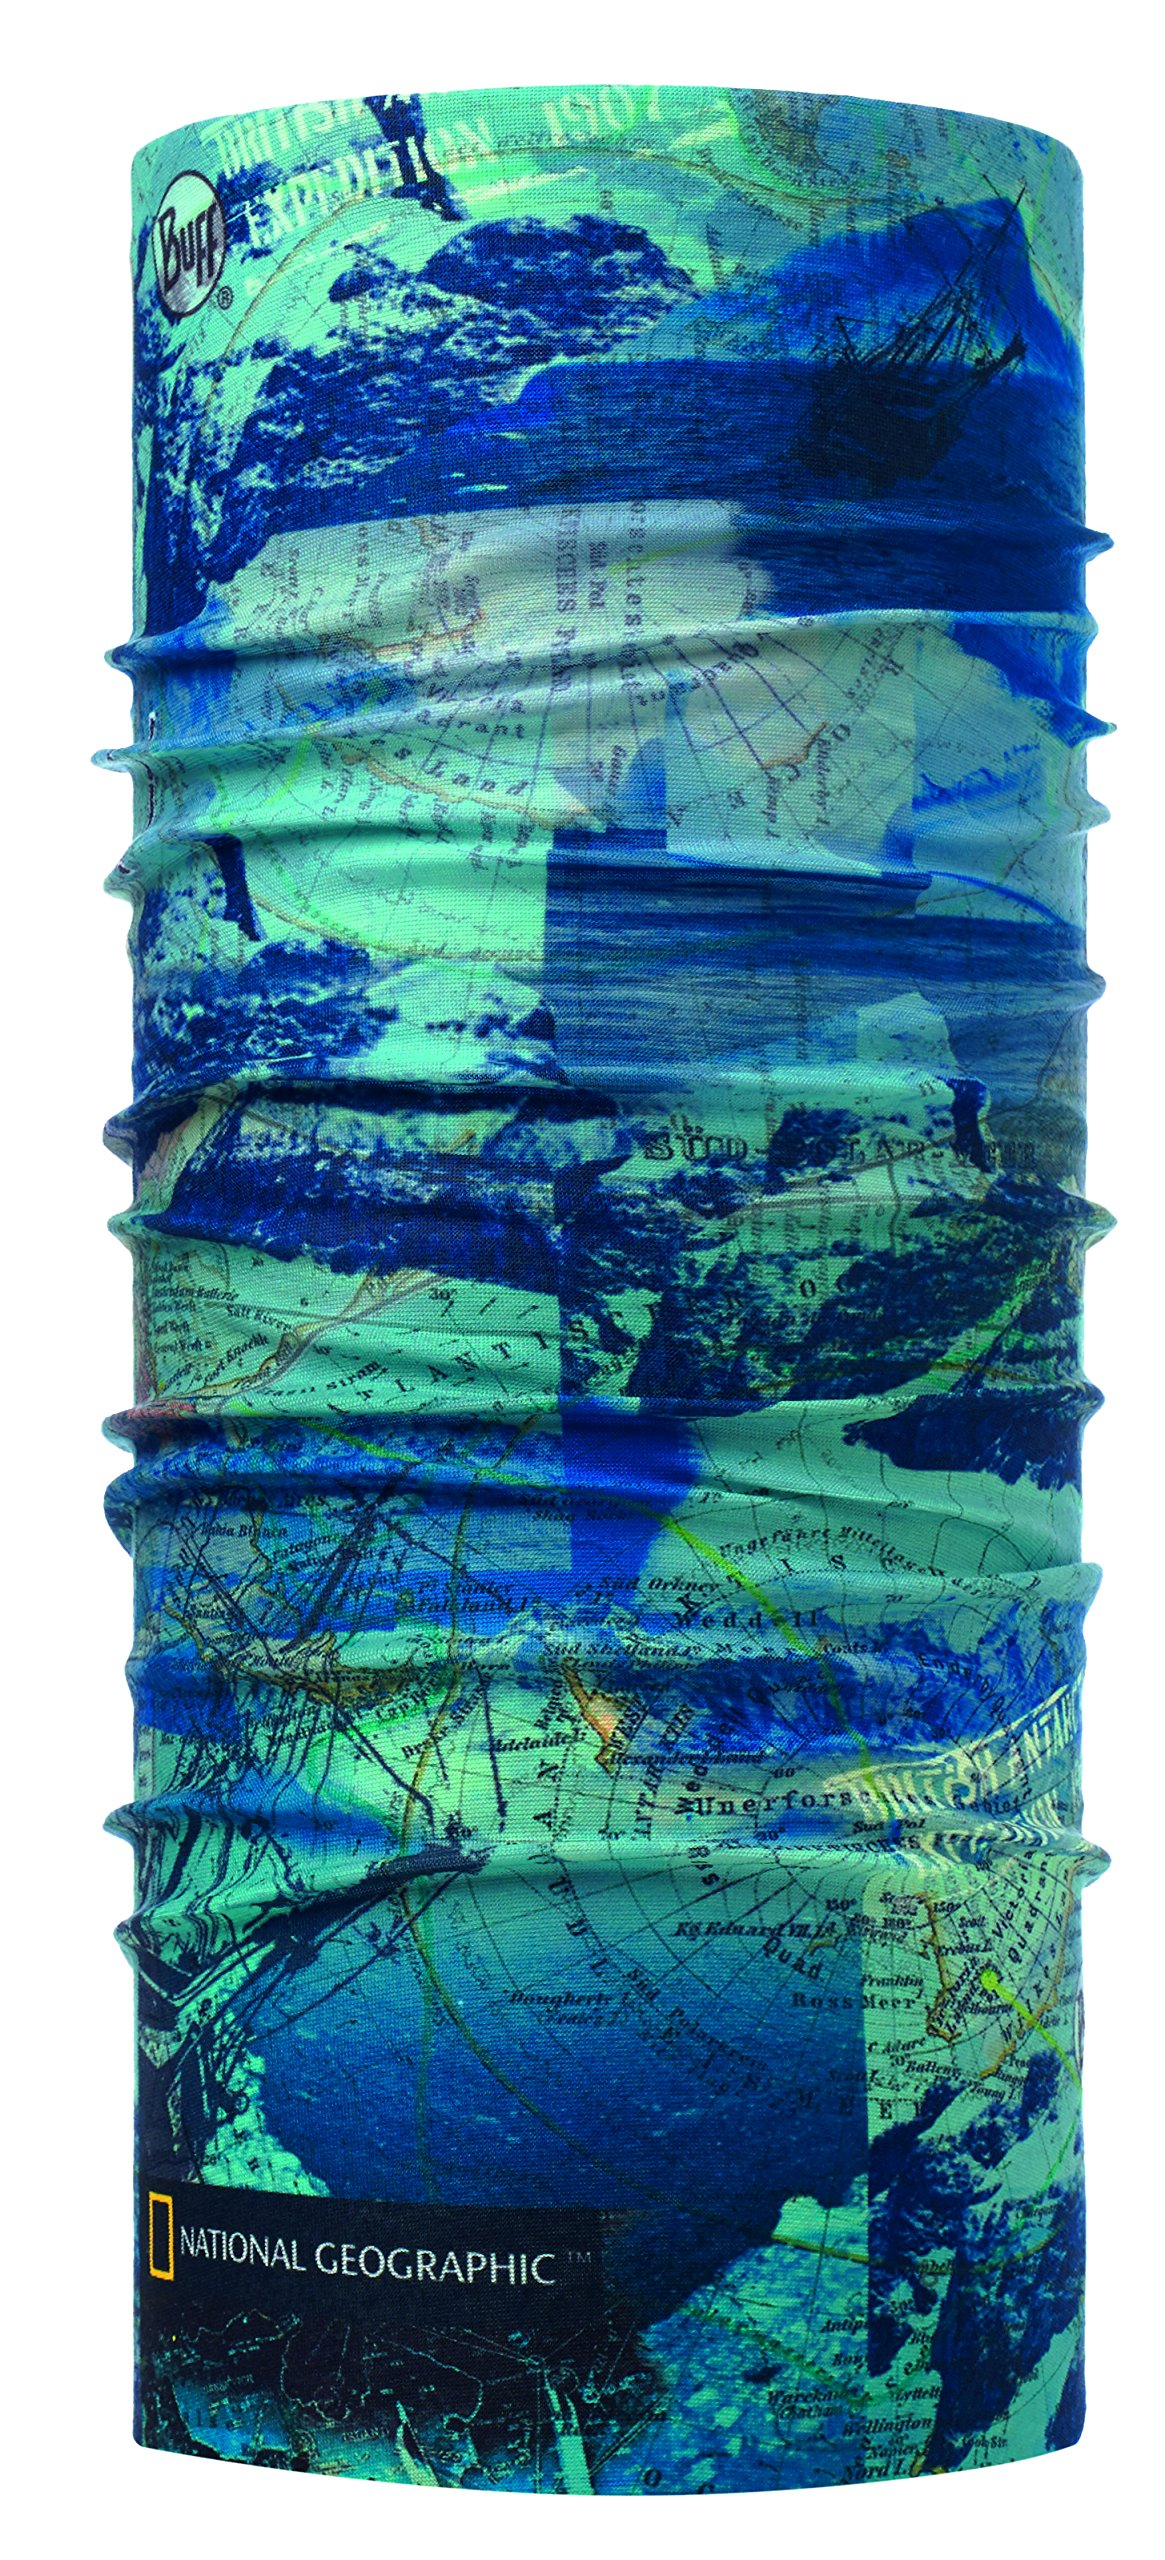 National Geographic Original Buff - Antarctic Ocean Blue - Adult One Size by Buff (Image #1)